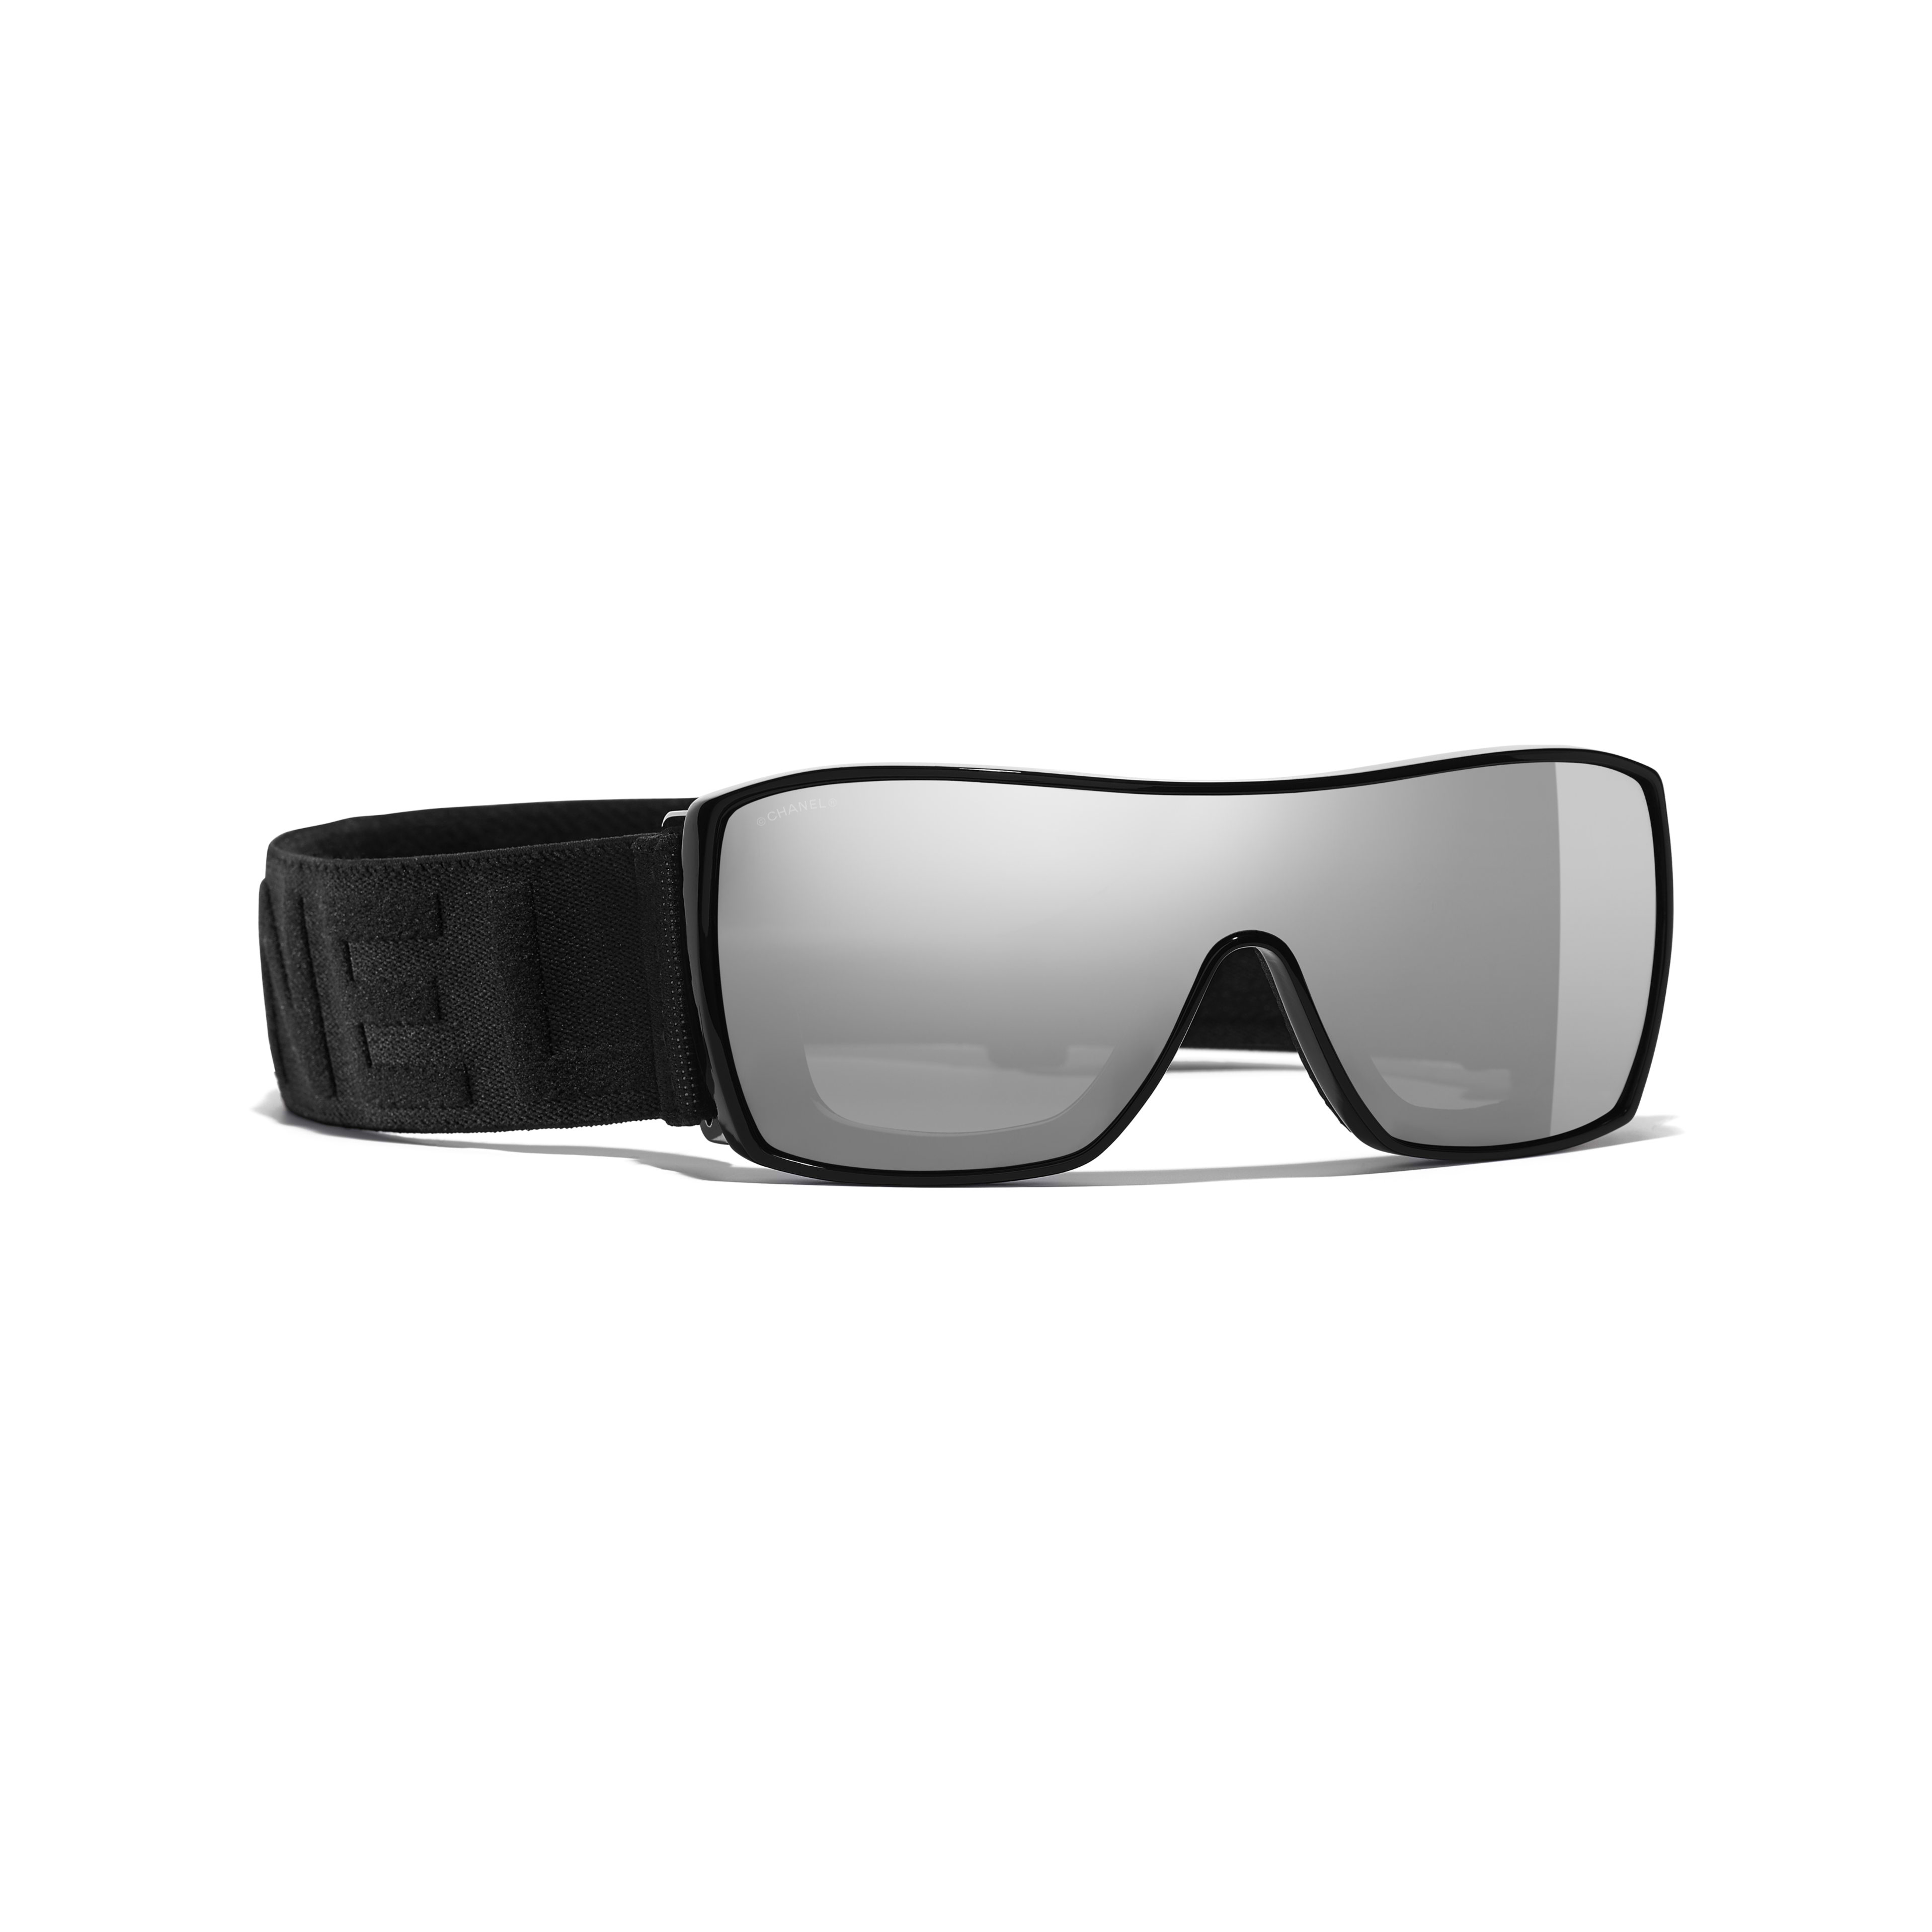 26d3c10b6a Shield Sunglasses Black frame. Silver mirror lenses.